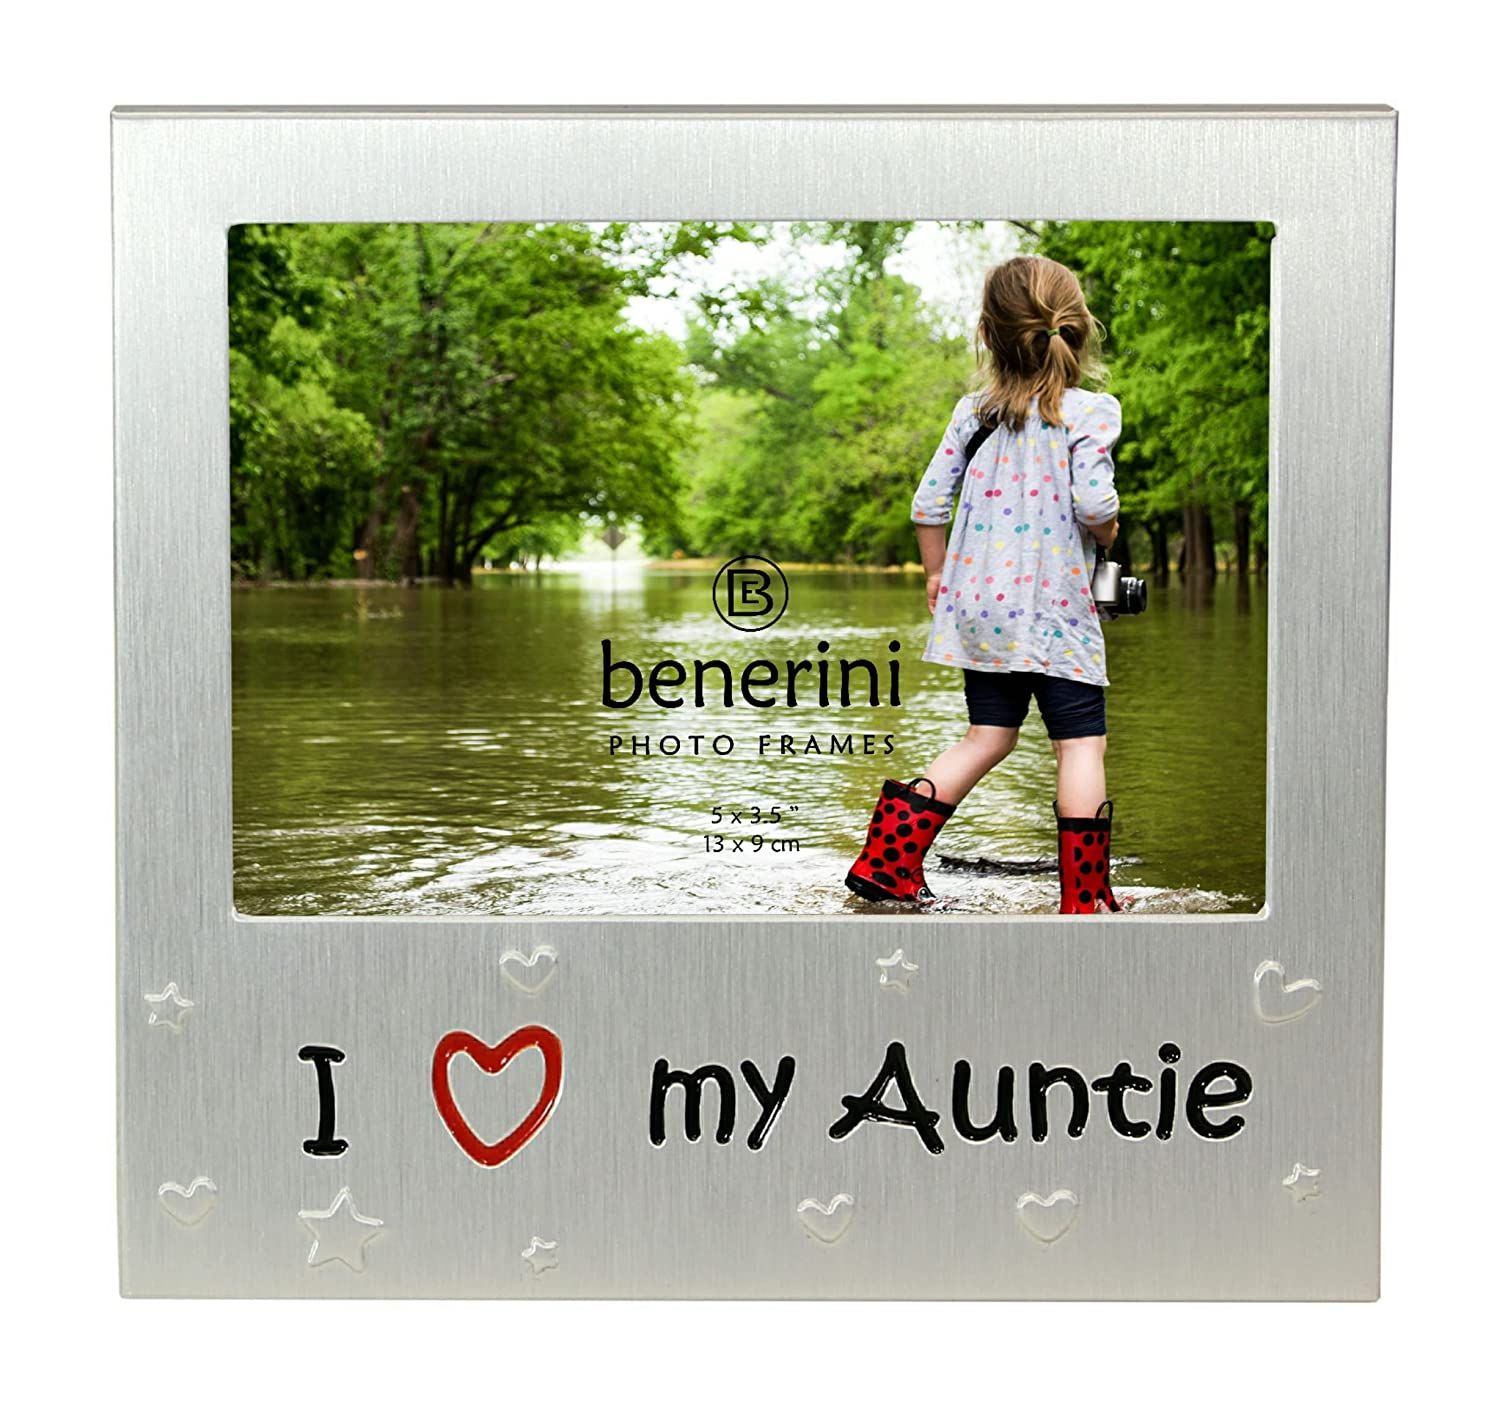 Amazon.com - I Love My Auntie - Expressions Photo Picture Frame Gift - 5 x 3.5